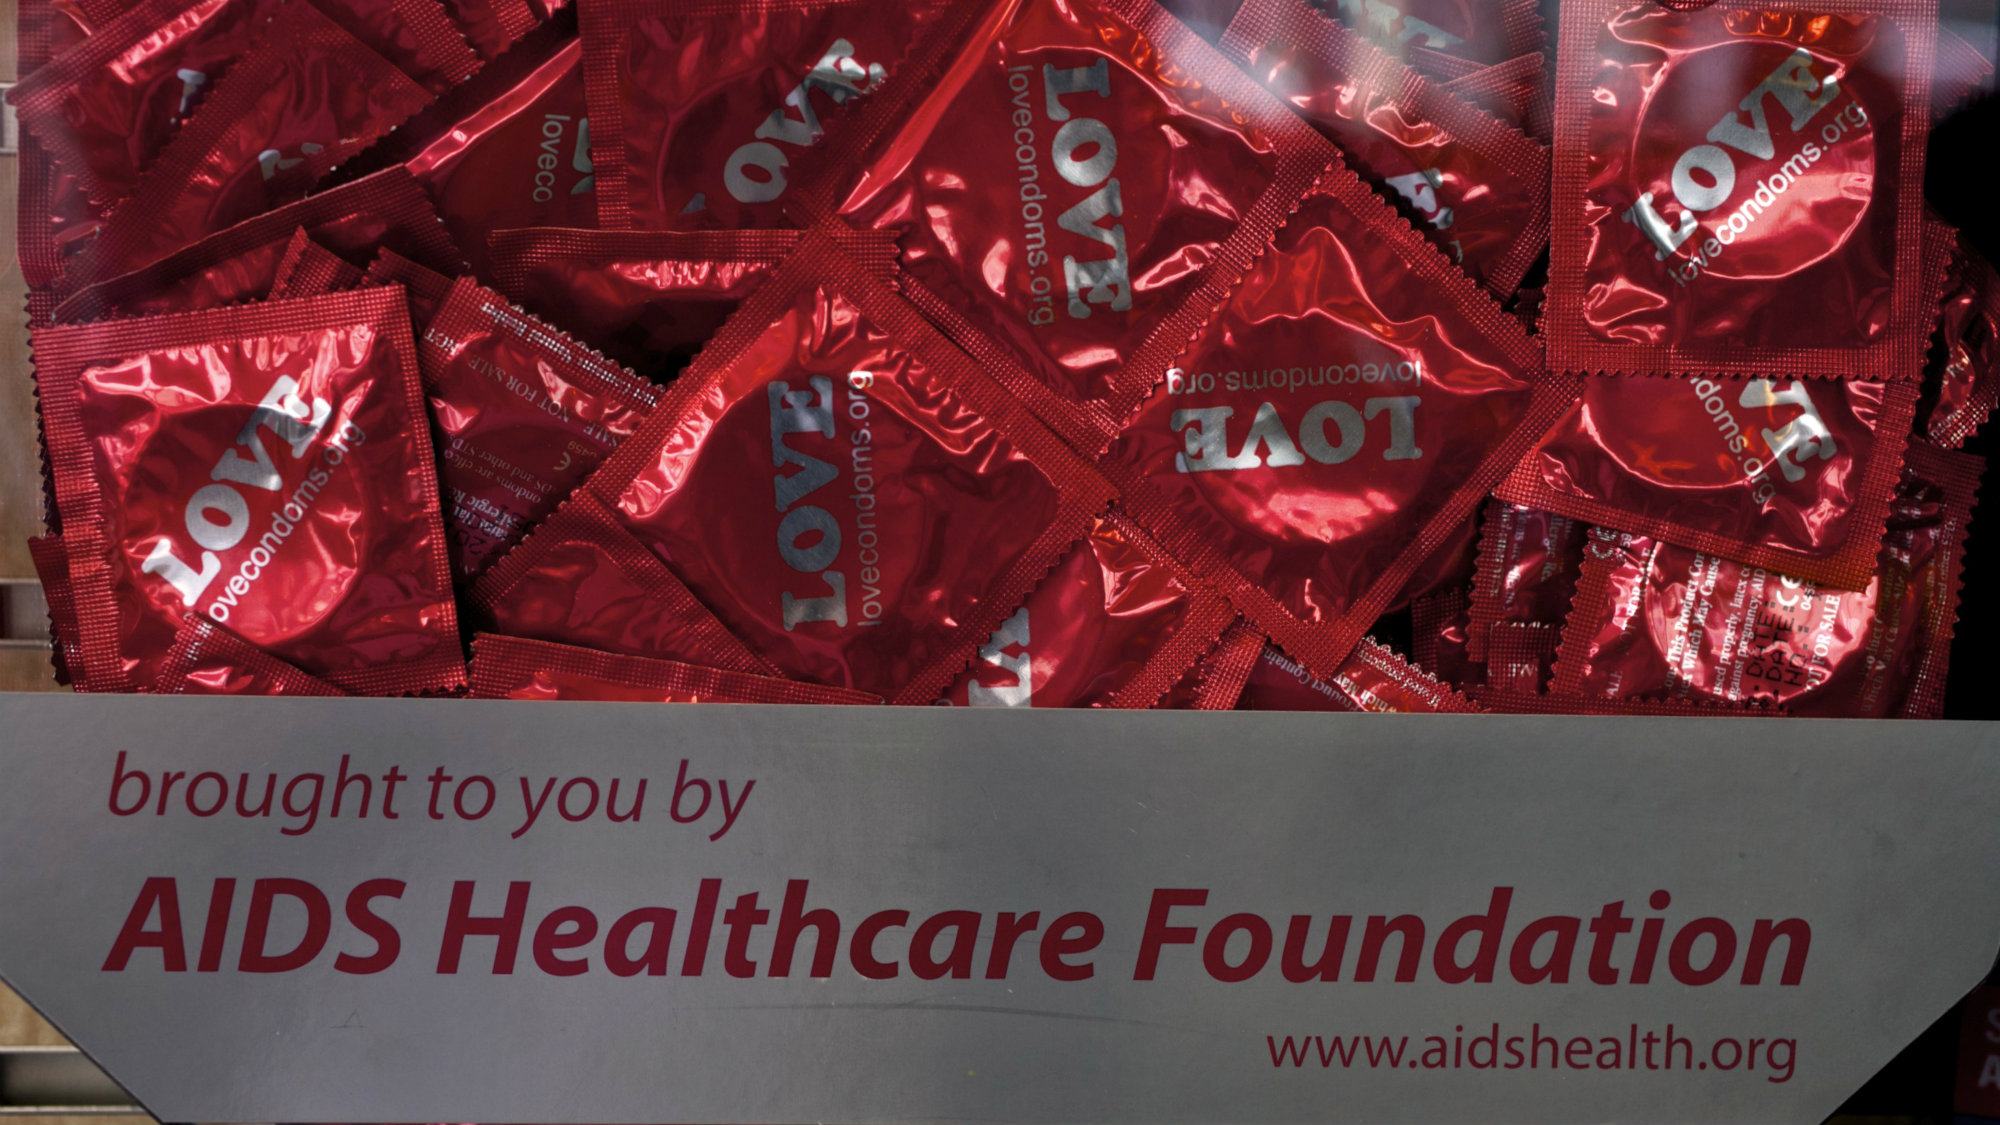 Condoms are offered at the AIDS Healthcare Foundation AHF Pharmacy in the Hollywood section of Los Angeles on Monday, Mar. 5, 2012.